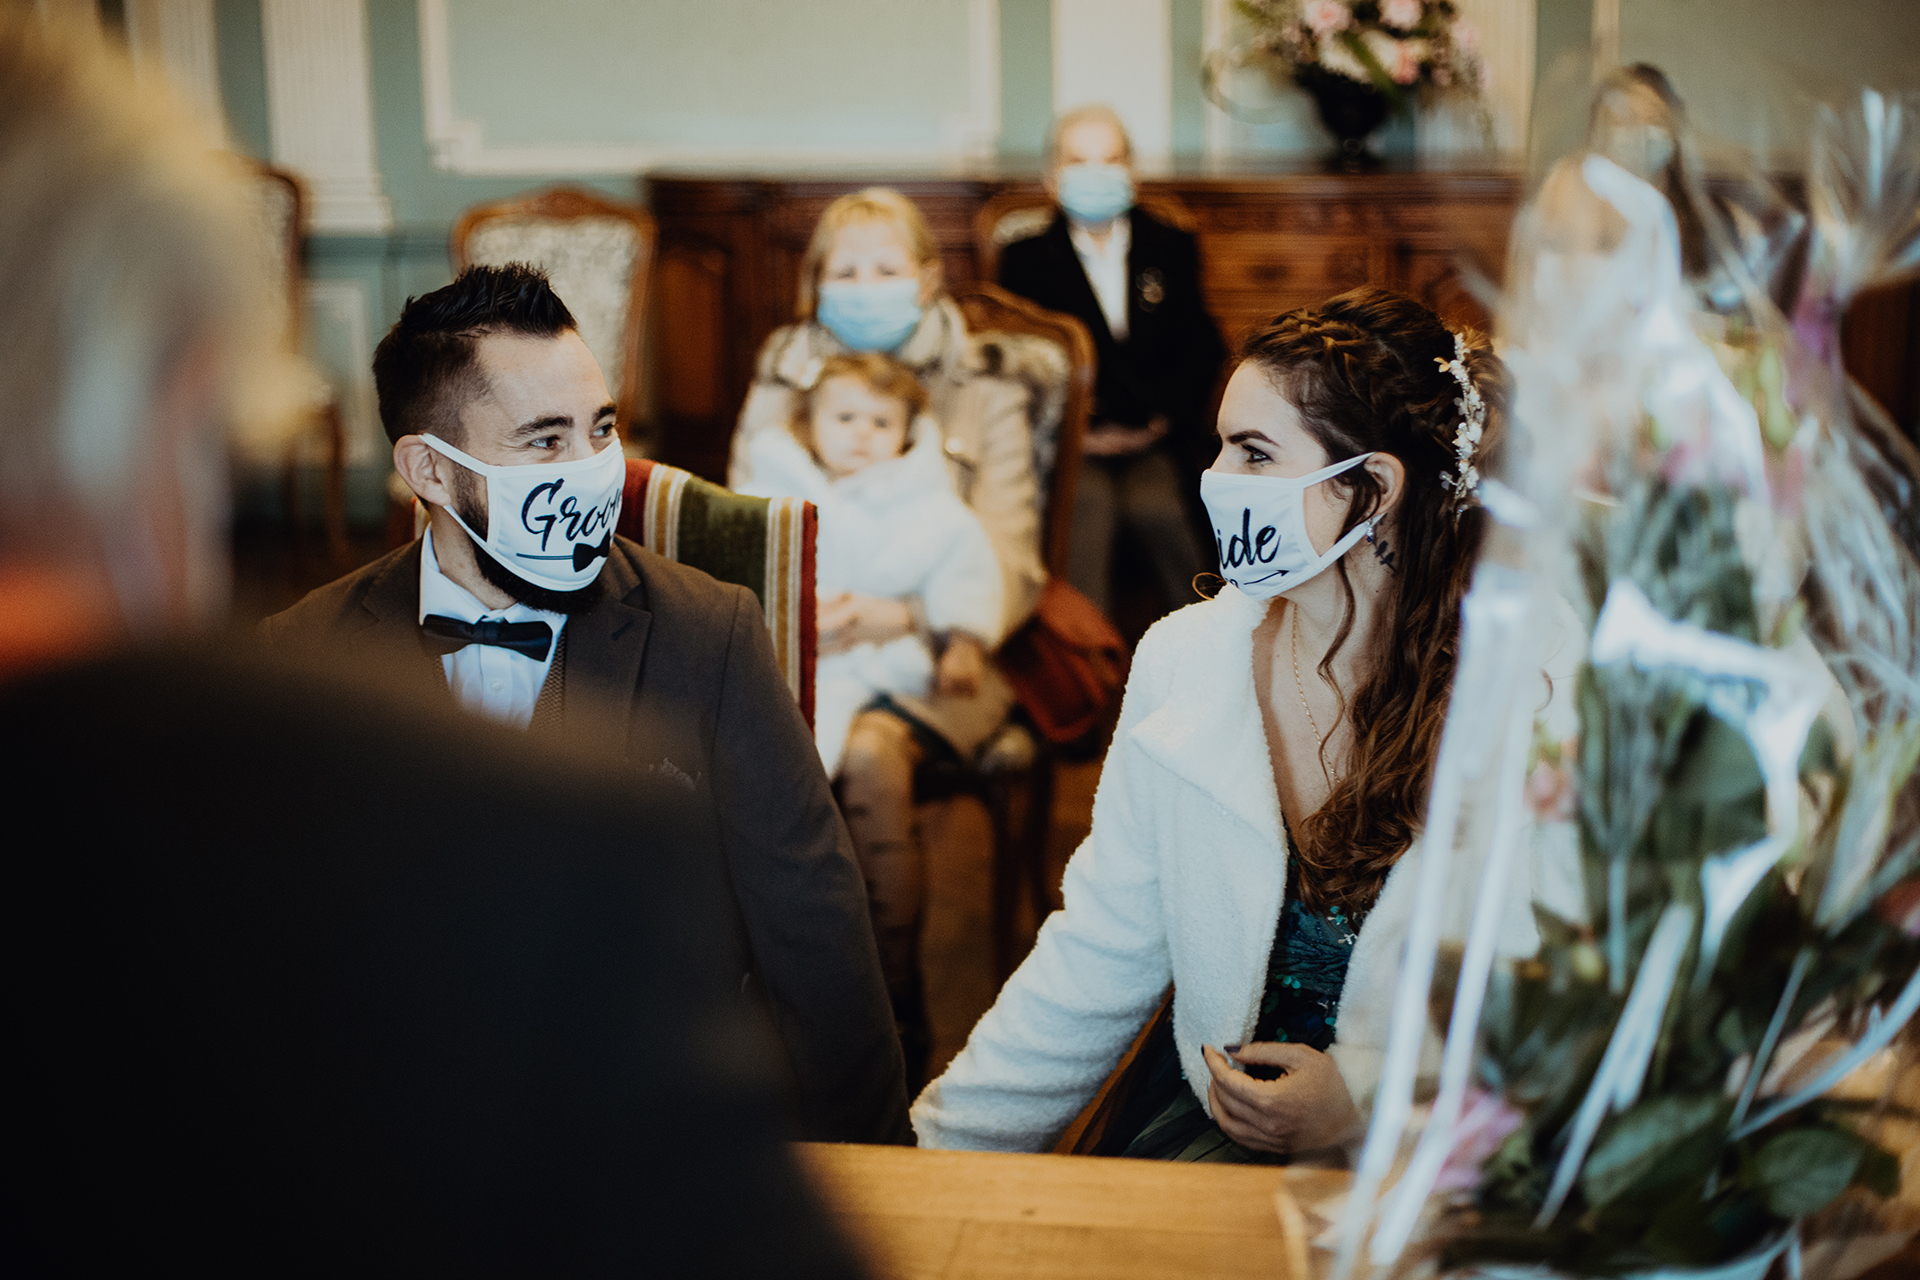 Town Hall of Pont-Château Wedding Ceremony Image | The face masks that they wore in order to stop the spread of the virus may have hid their smiles